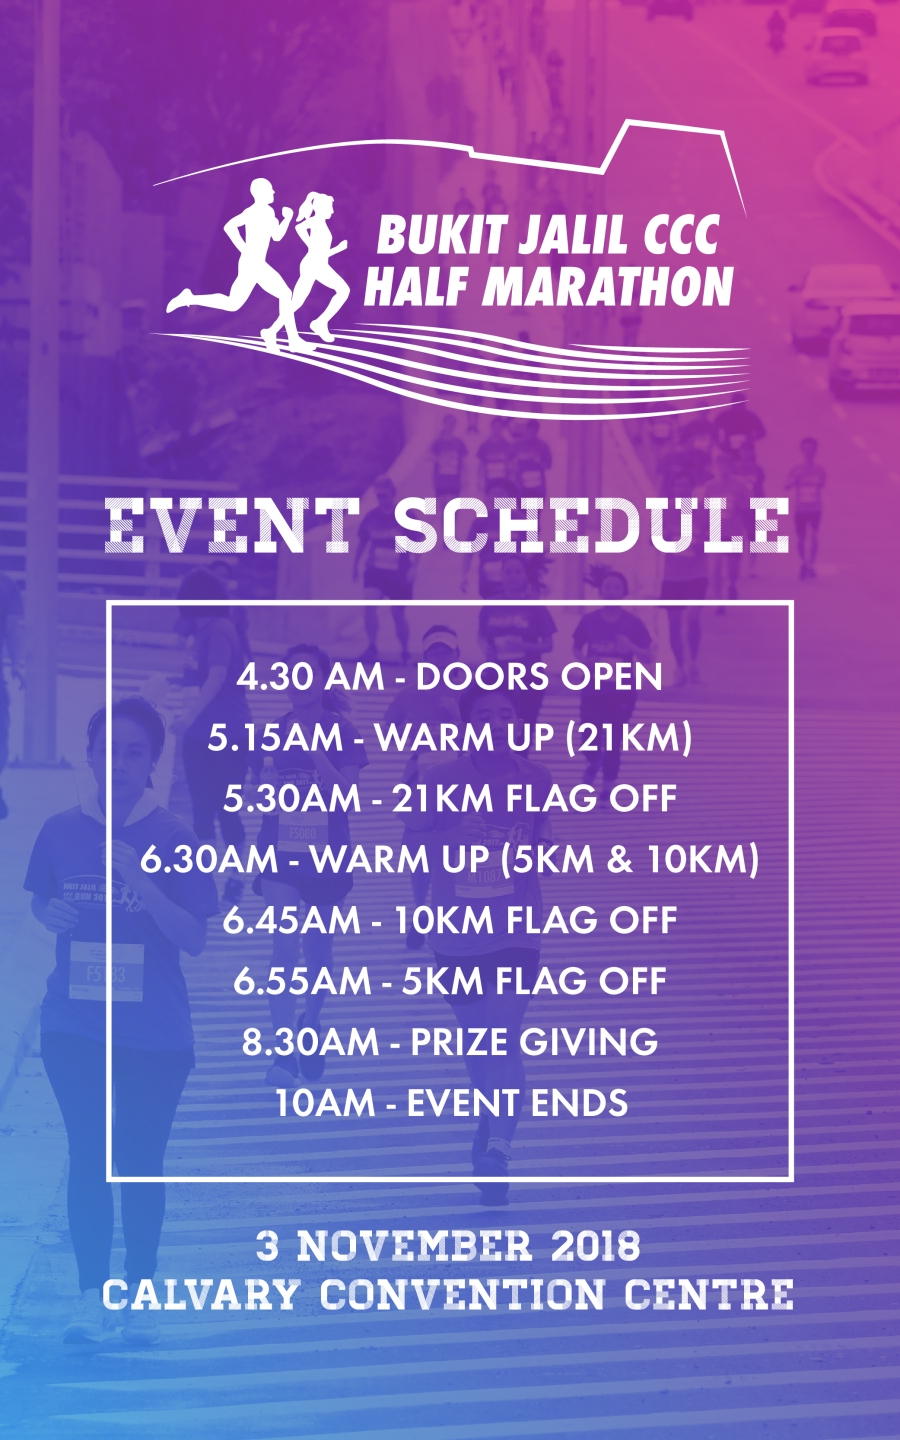 BJCCC RUN 2018 EVENT SCHEDULE-01.jpg